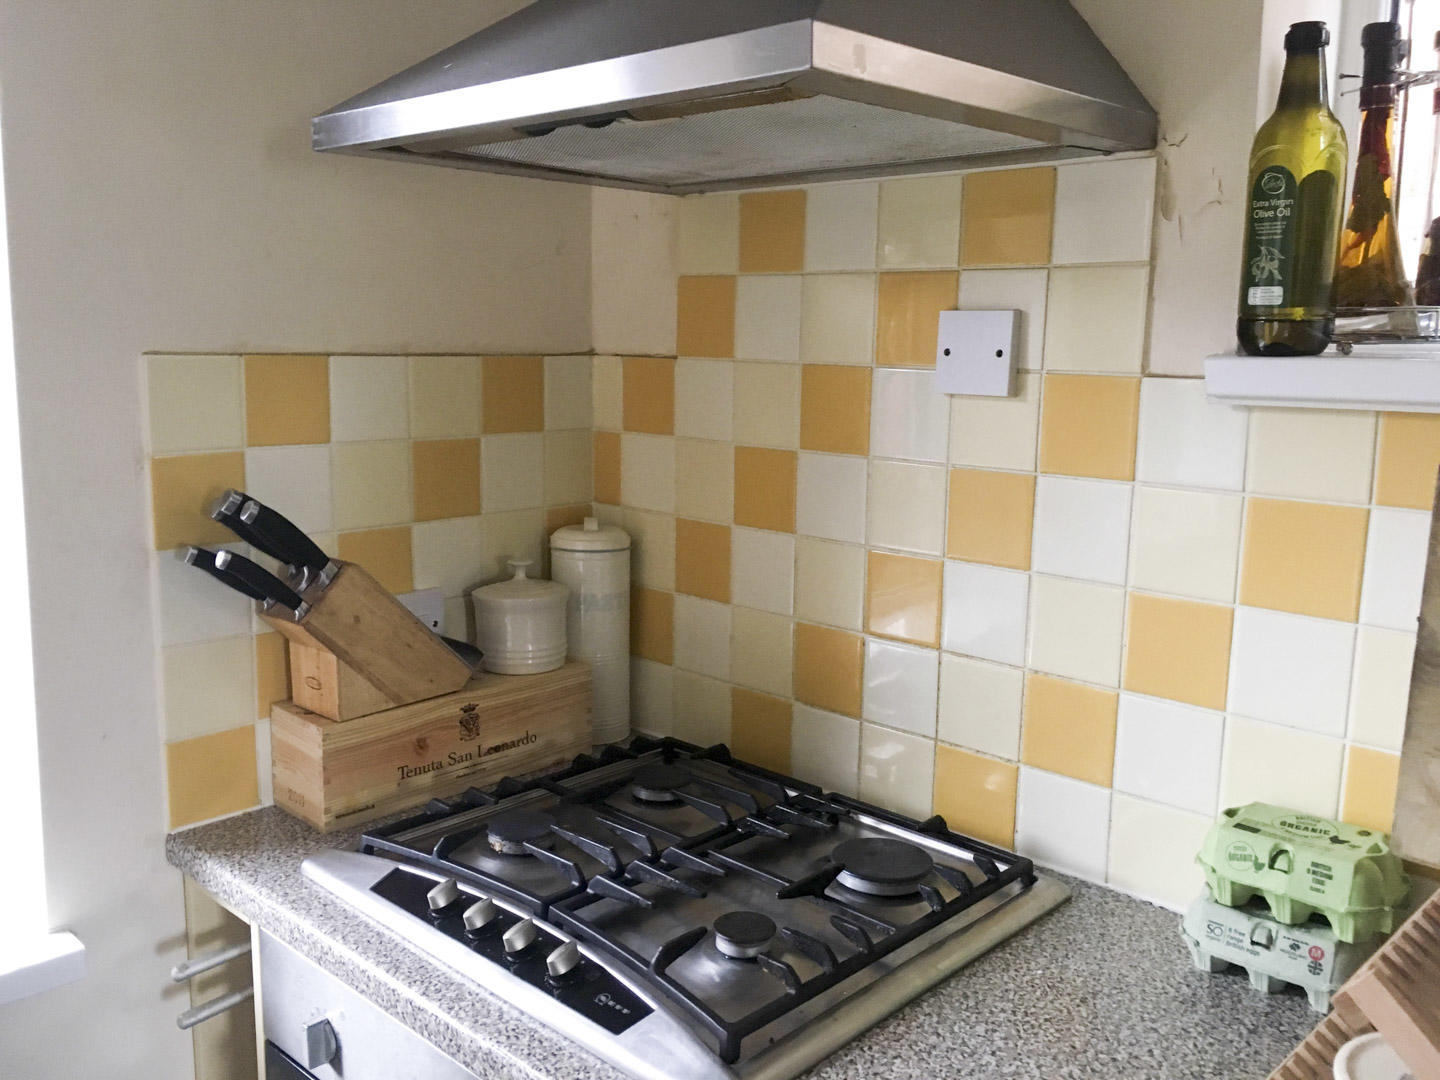 Painting Kitchen Tiles: A Quick And Easy Kitchen Update Using Tile Paint